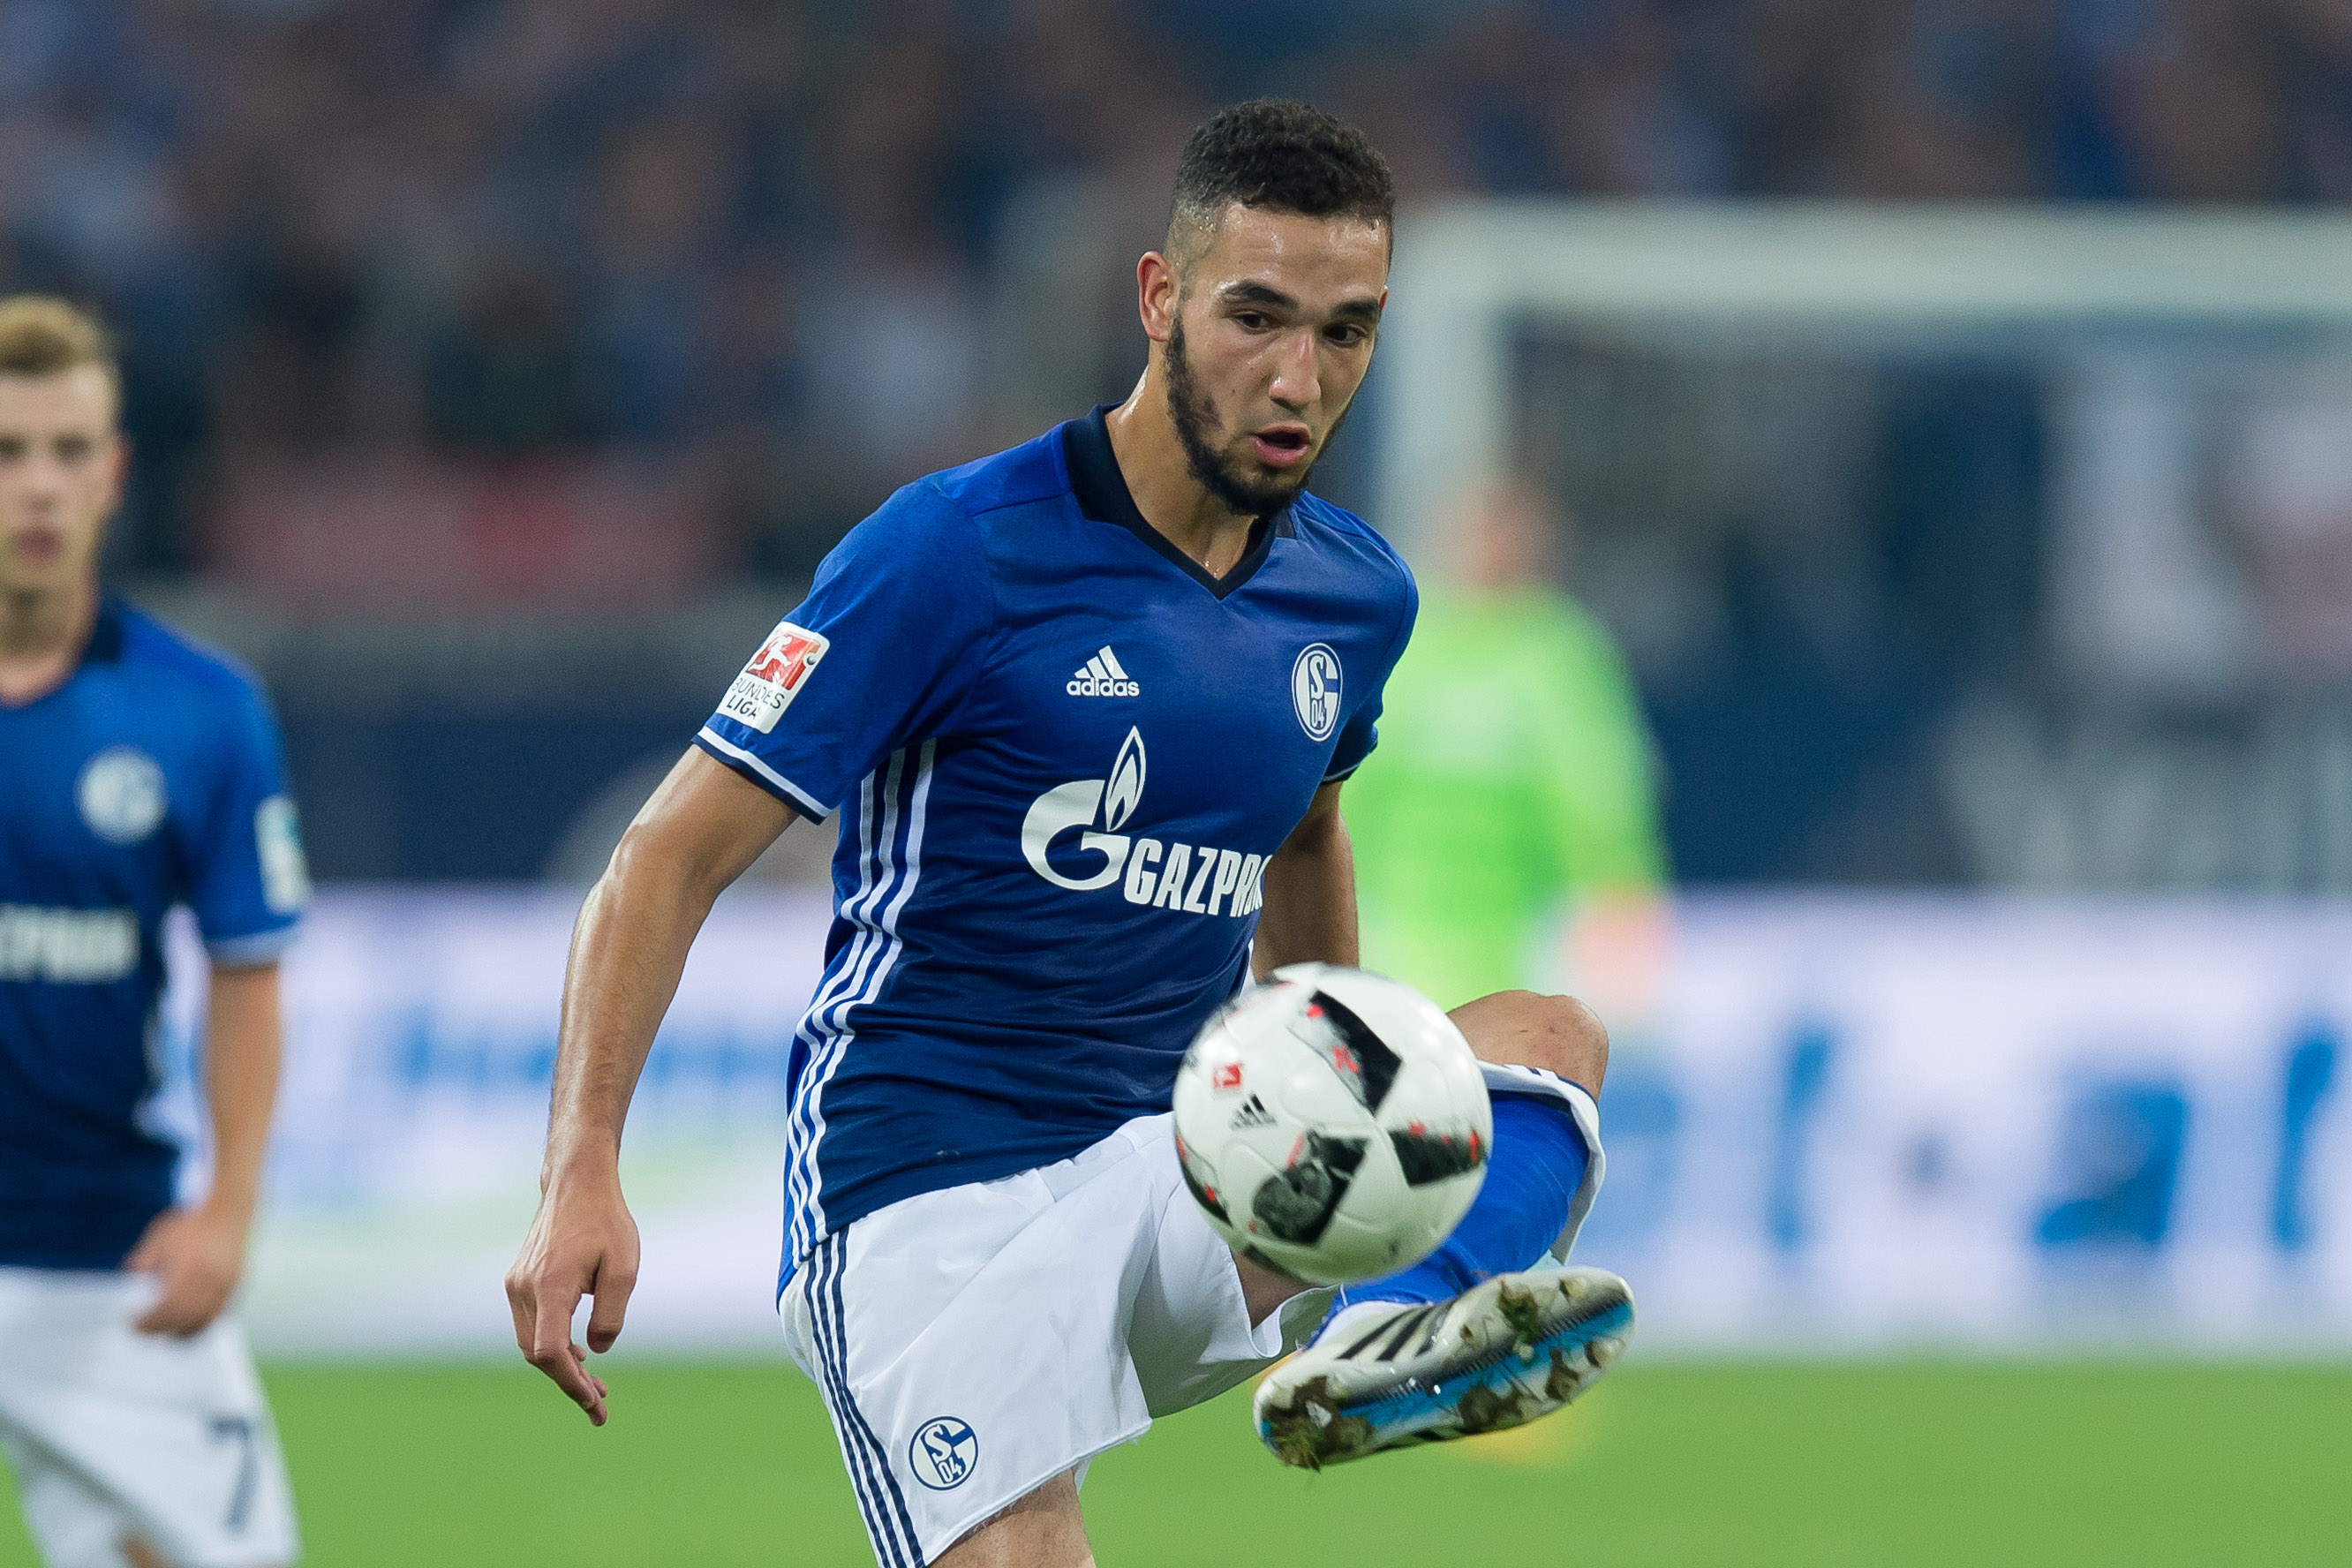 http://playingfor90.com/wp-content/uploads/getty-images/2016/09/610174214-1-bl-fc-schalke-04-1-fc-koeln.jpg